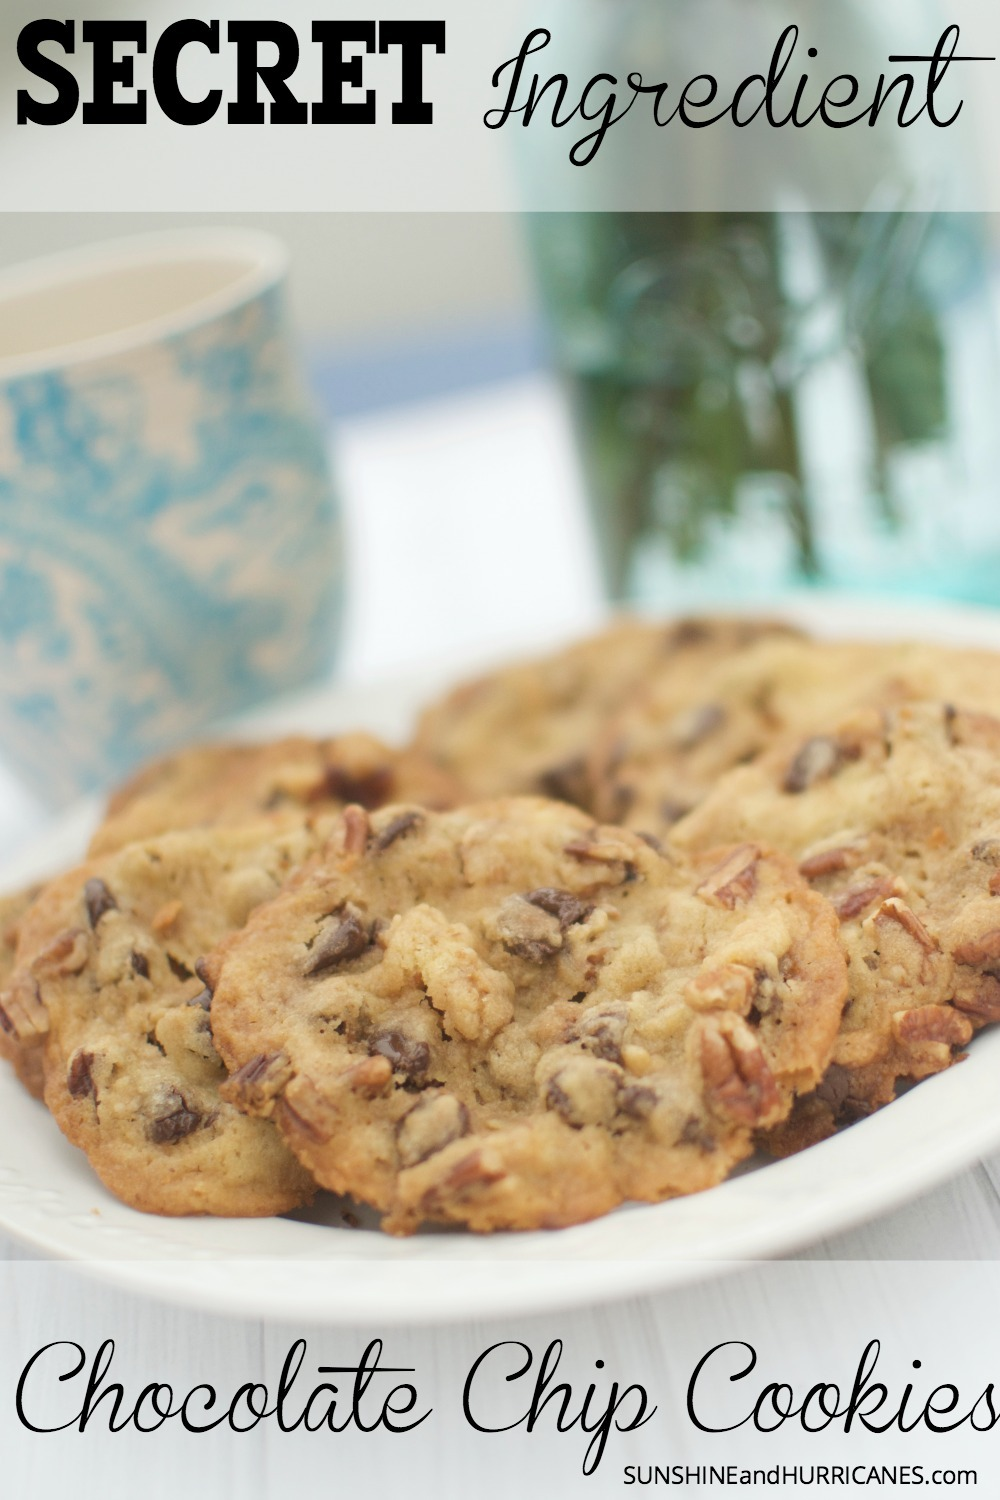 You will NOT believe what is in these cookies OR how amazing they taste! You'll have your guests dying to know your secret in this chocolate chip cookie recipe as they steal just one more off the plate. Secret Ingredient Chocolate Chip Cookies. SunshineandHurricanes.com